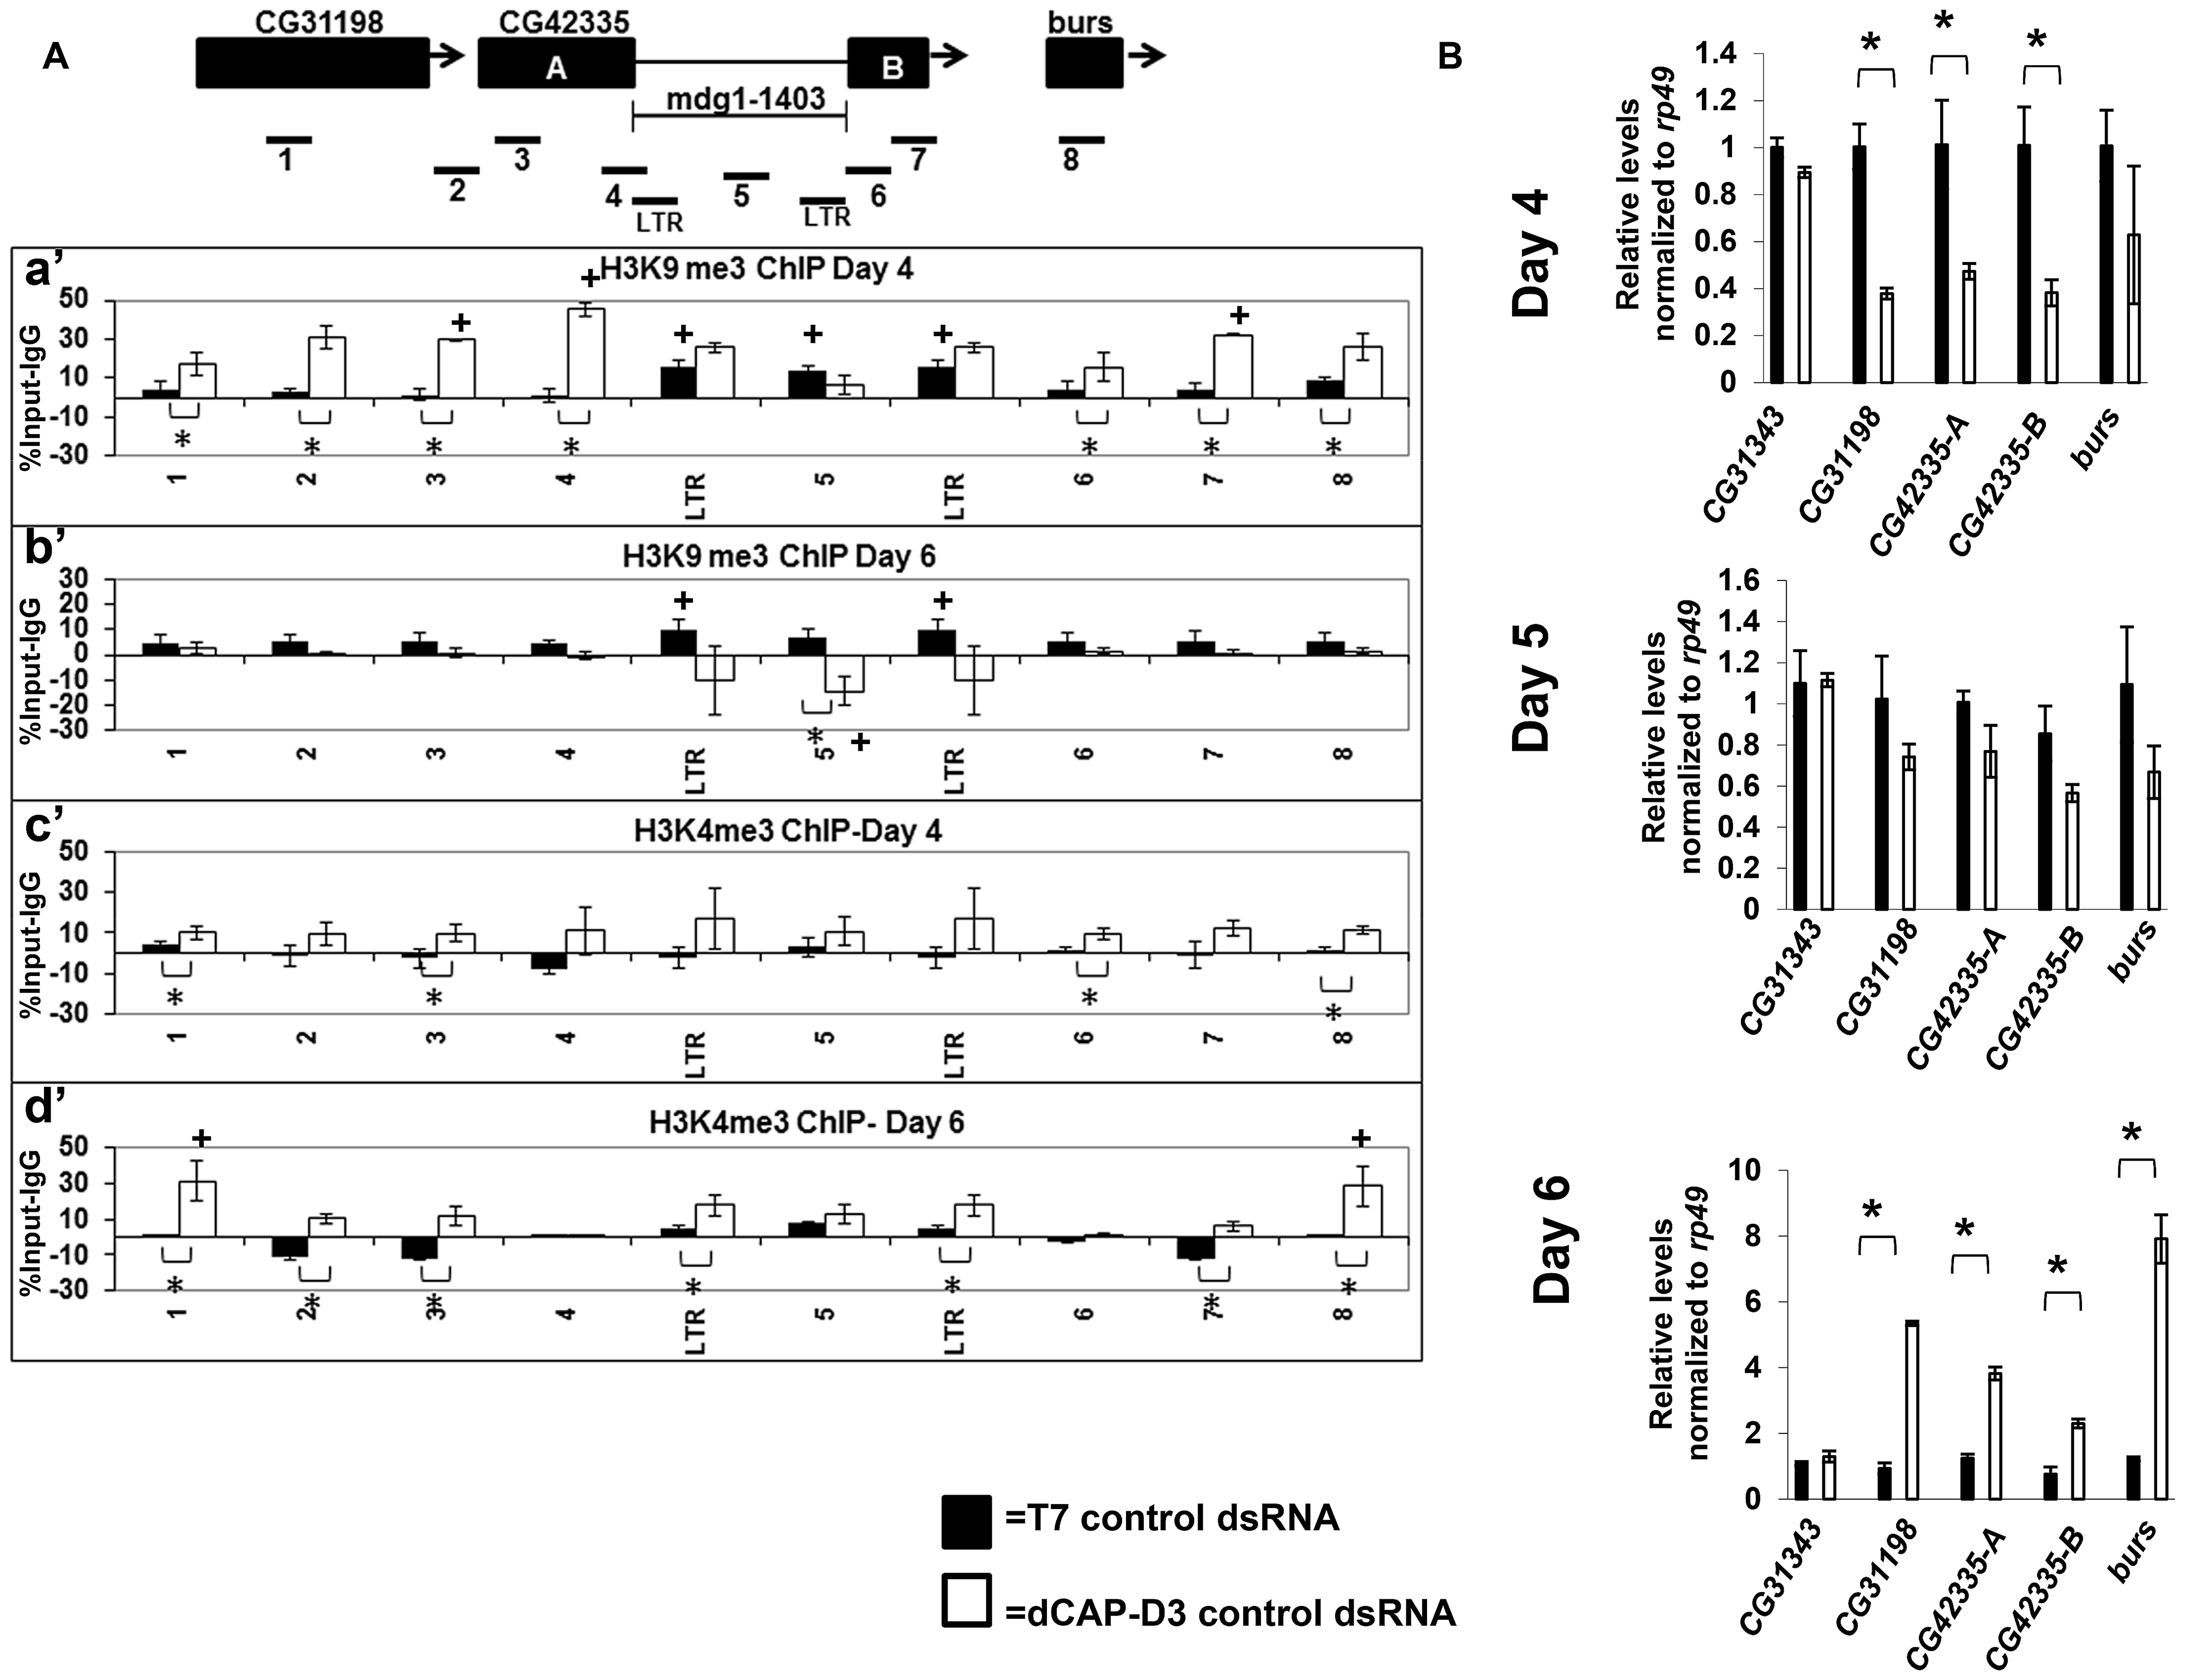 Decreased dCAP-D3 levels result in spreading of repressive histone marks and an opening of the chromatin at a dCAP-D3 regulated gene cluster containing a retrotransposon.